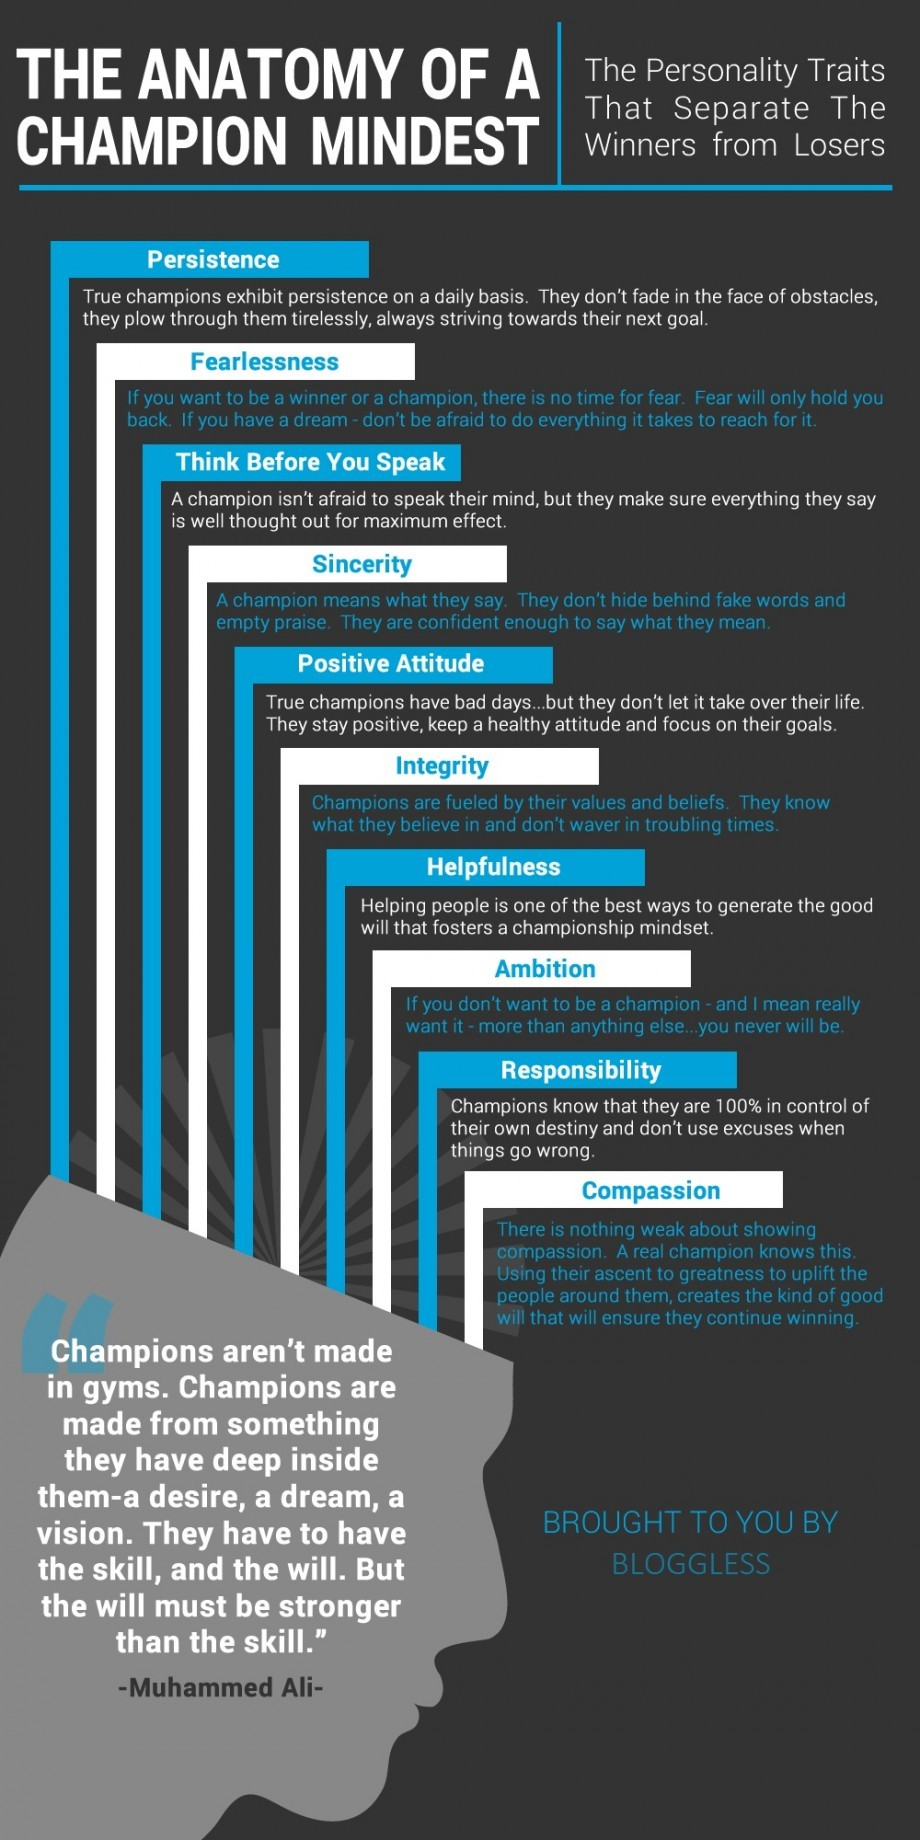 Click on image to see full size version of the Anatomy of the Champion Mindset [image care of Blogless.com]